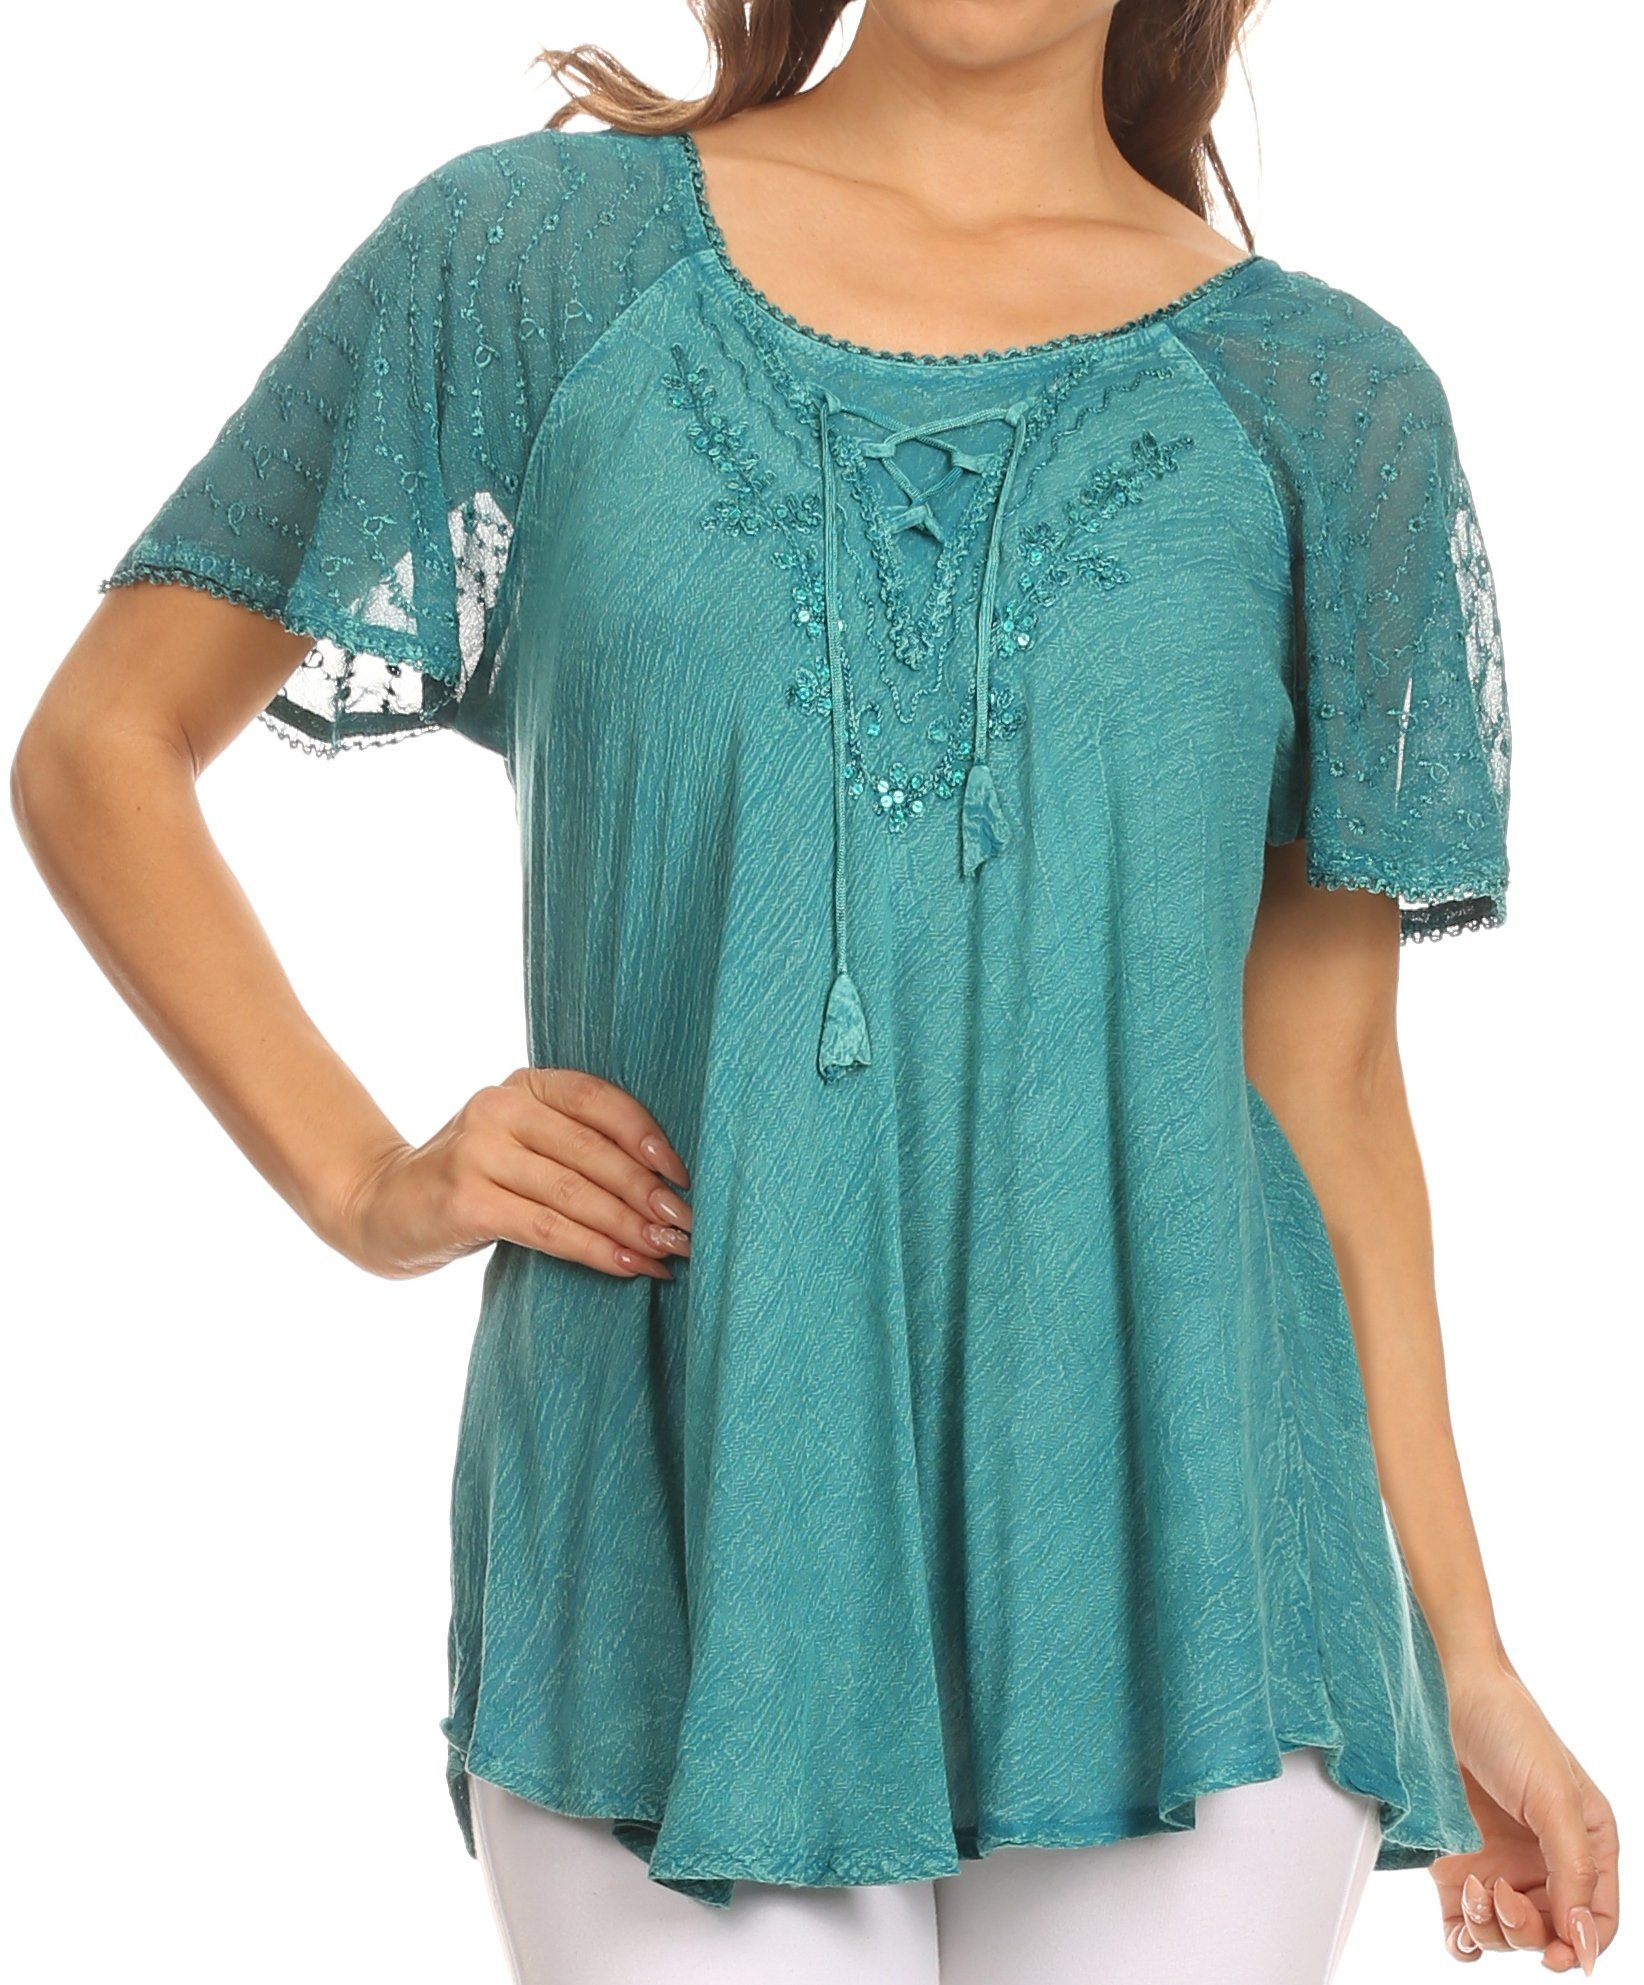 369424df5108d Sakkas Ellie Sequin Embroidered Cap Sleeve Scoop Neck Relaxed Fit Blouse